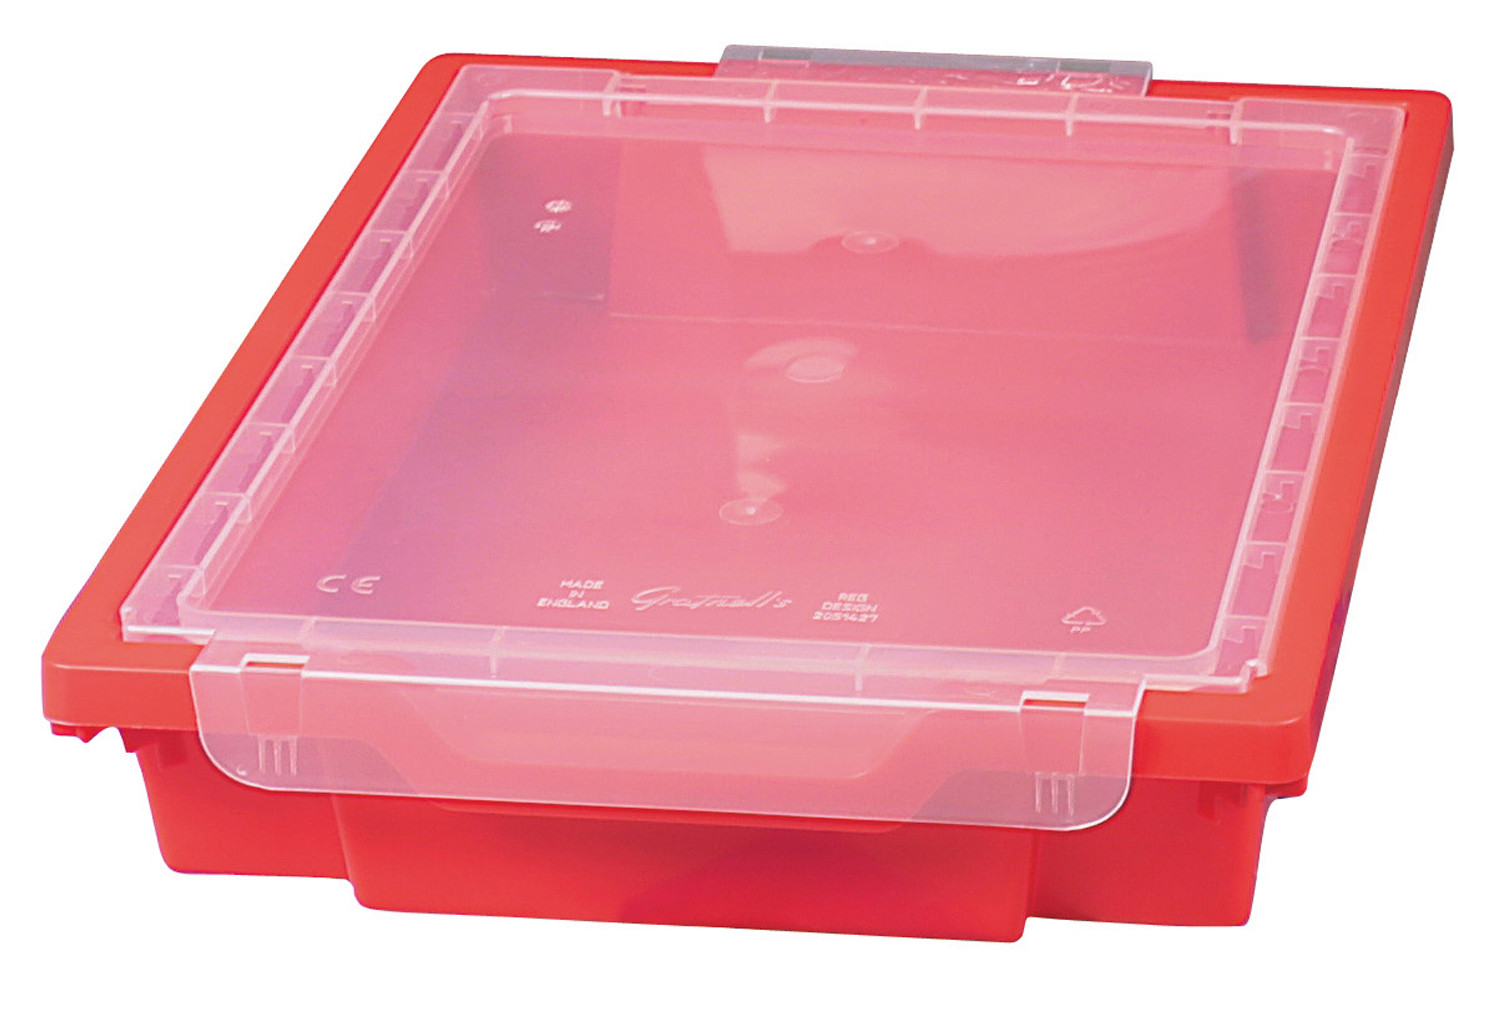 12 X 12 Clip On Lids For Gratnell Trays. Find Loads More Colours, Materials & Styles Online - Buy Office Furniture Online